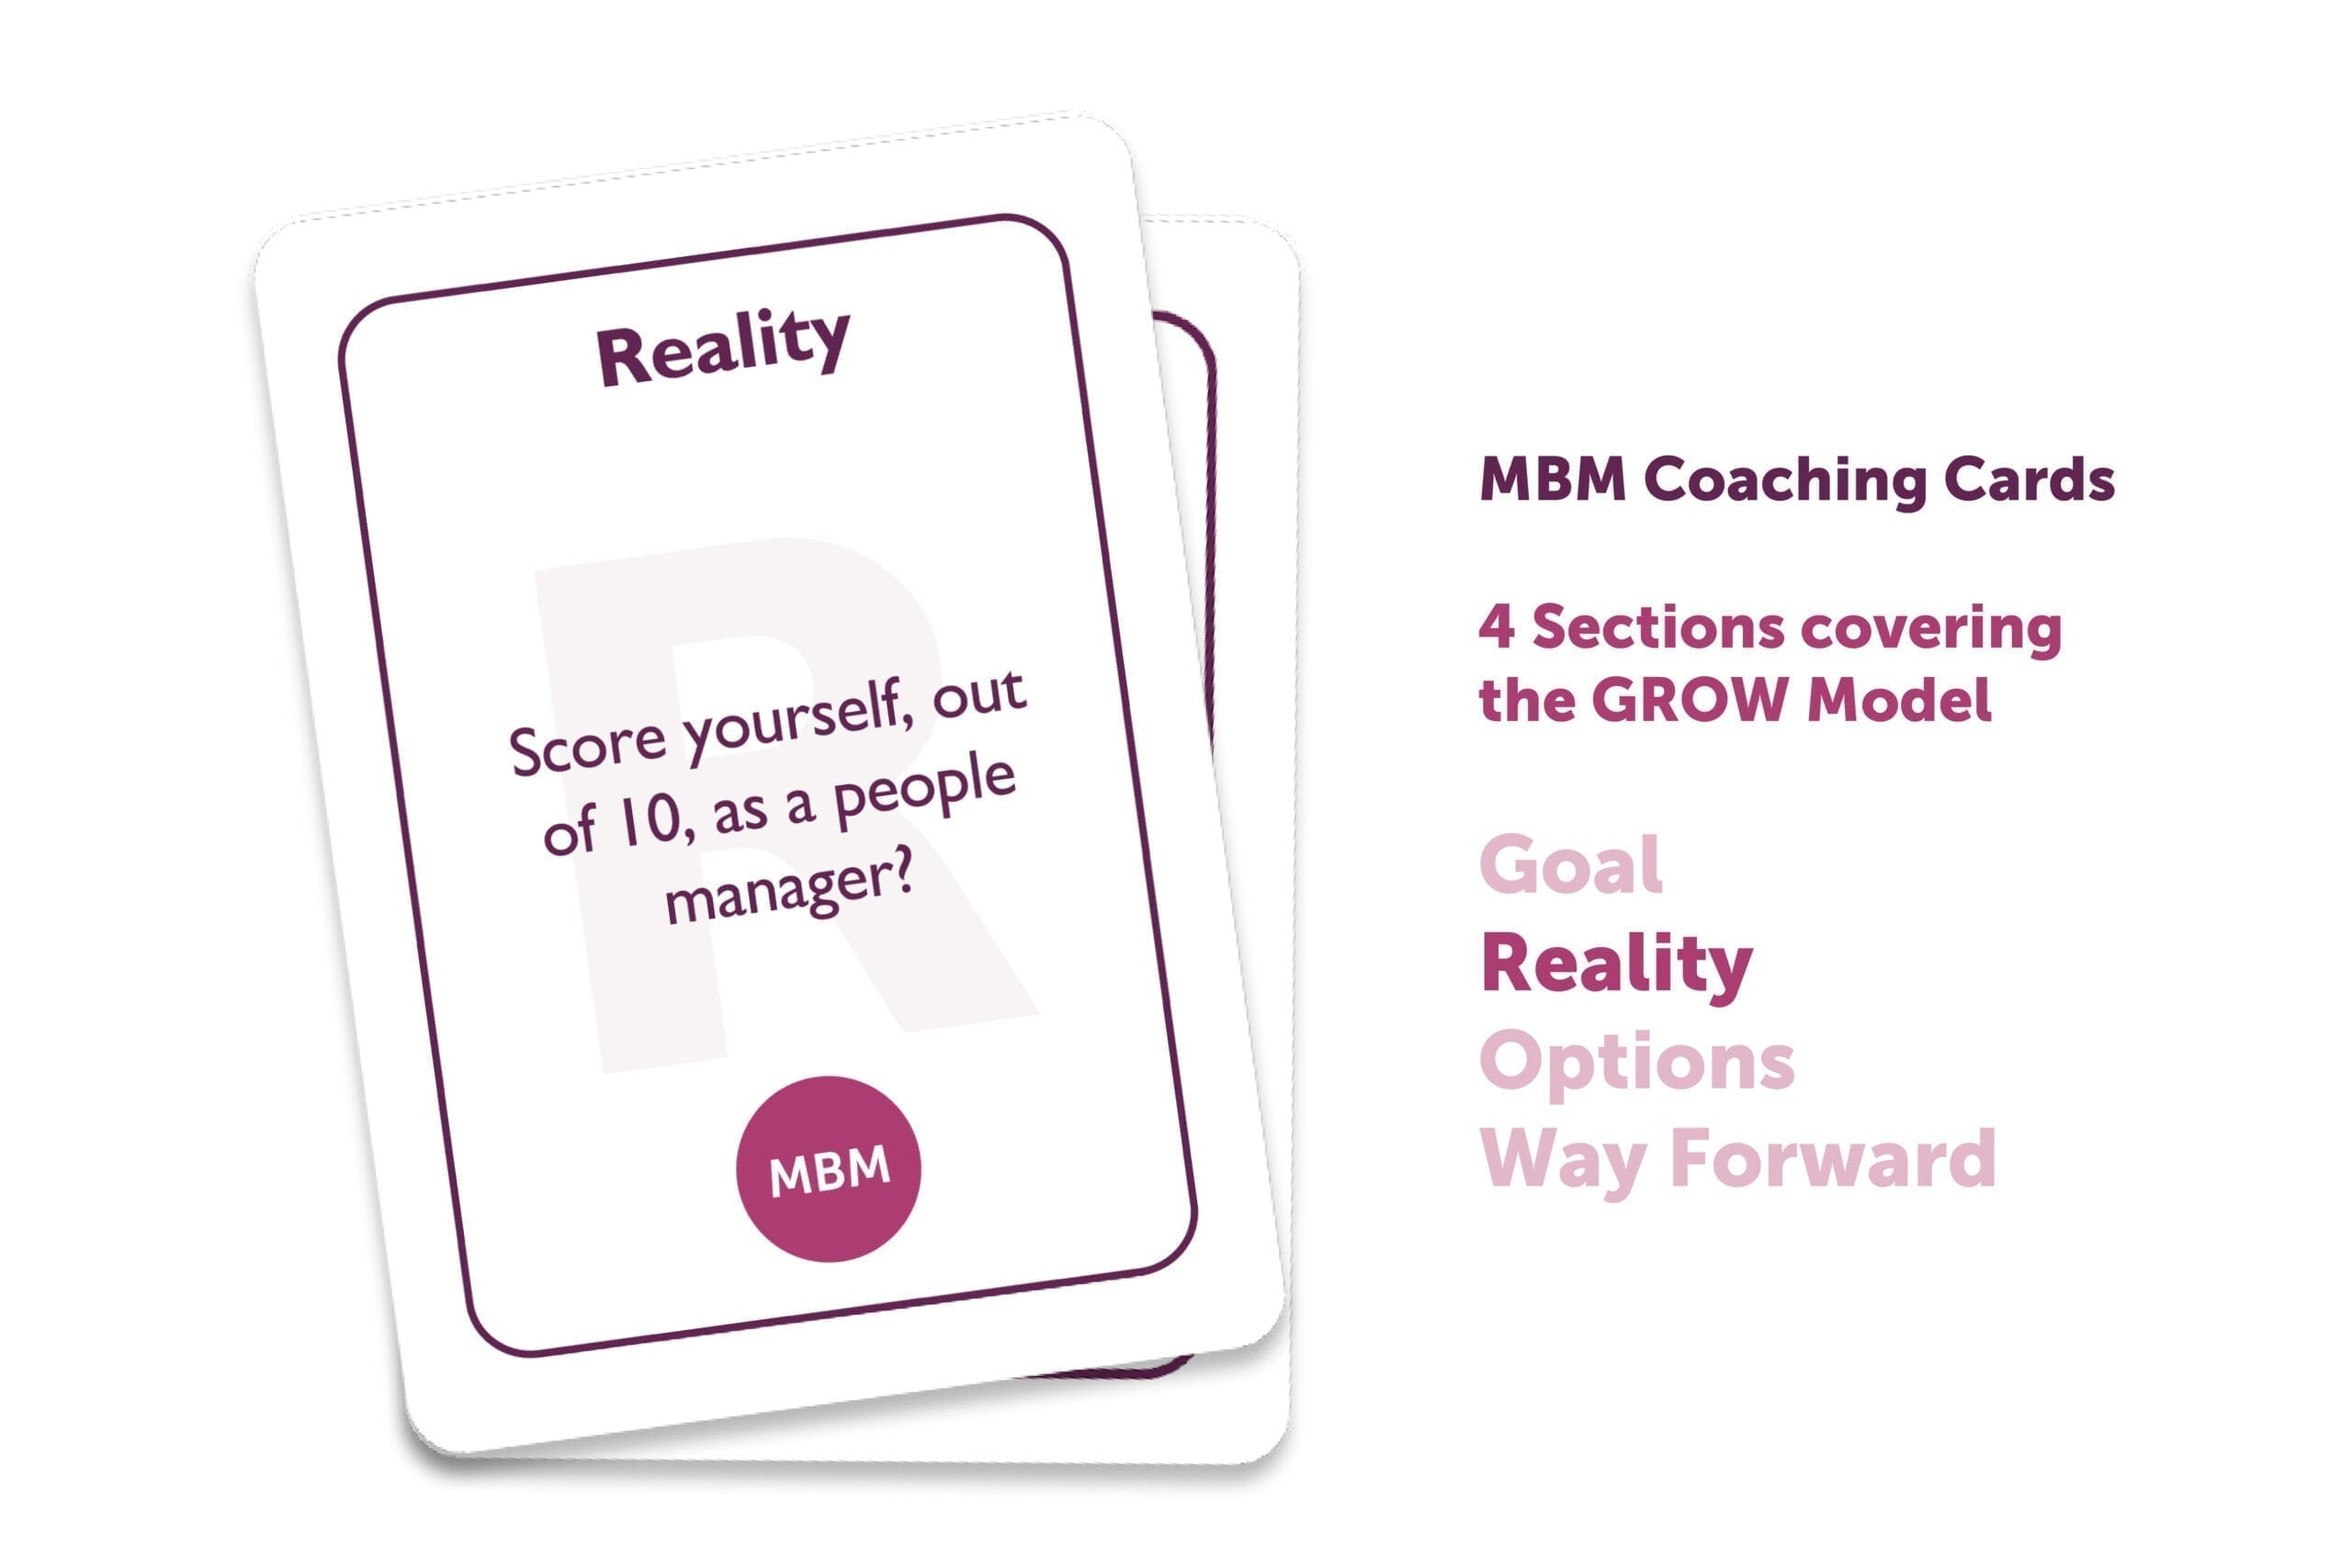 Two coaching cards on top of each other with Reality as the title